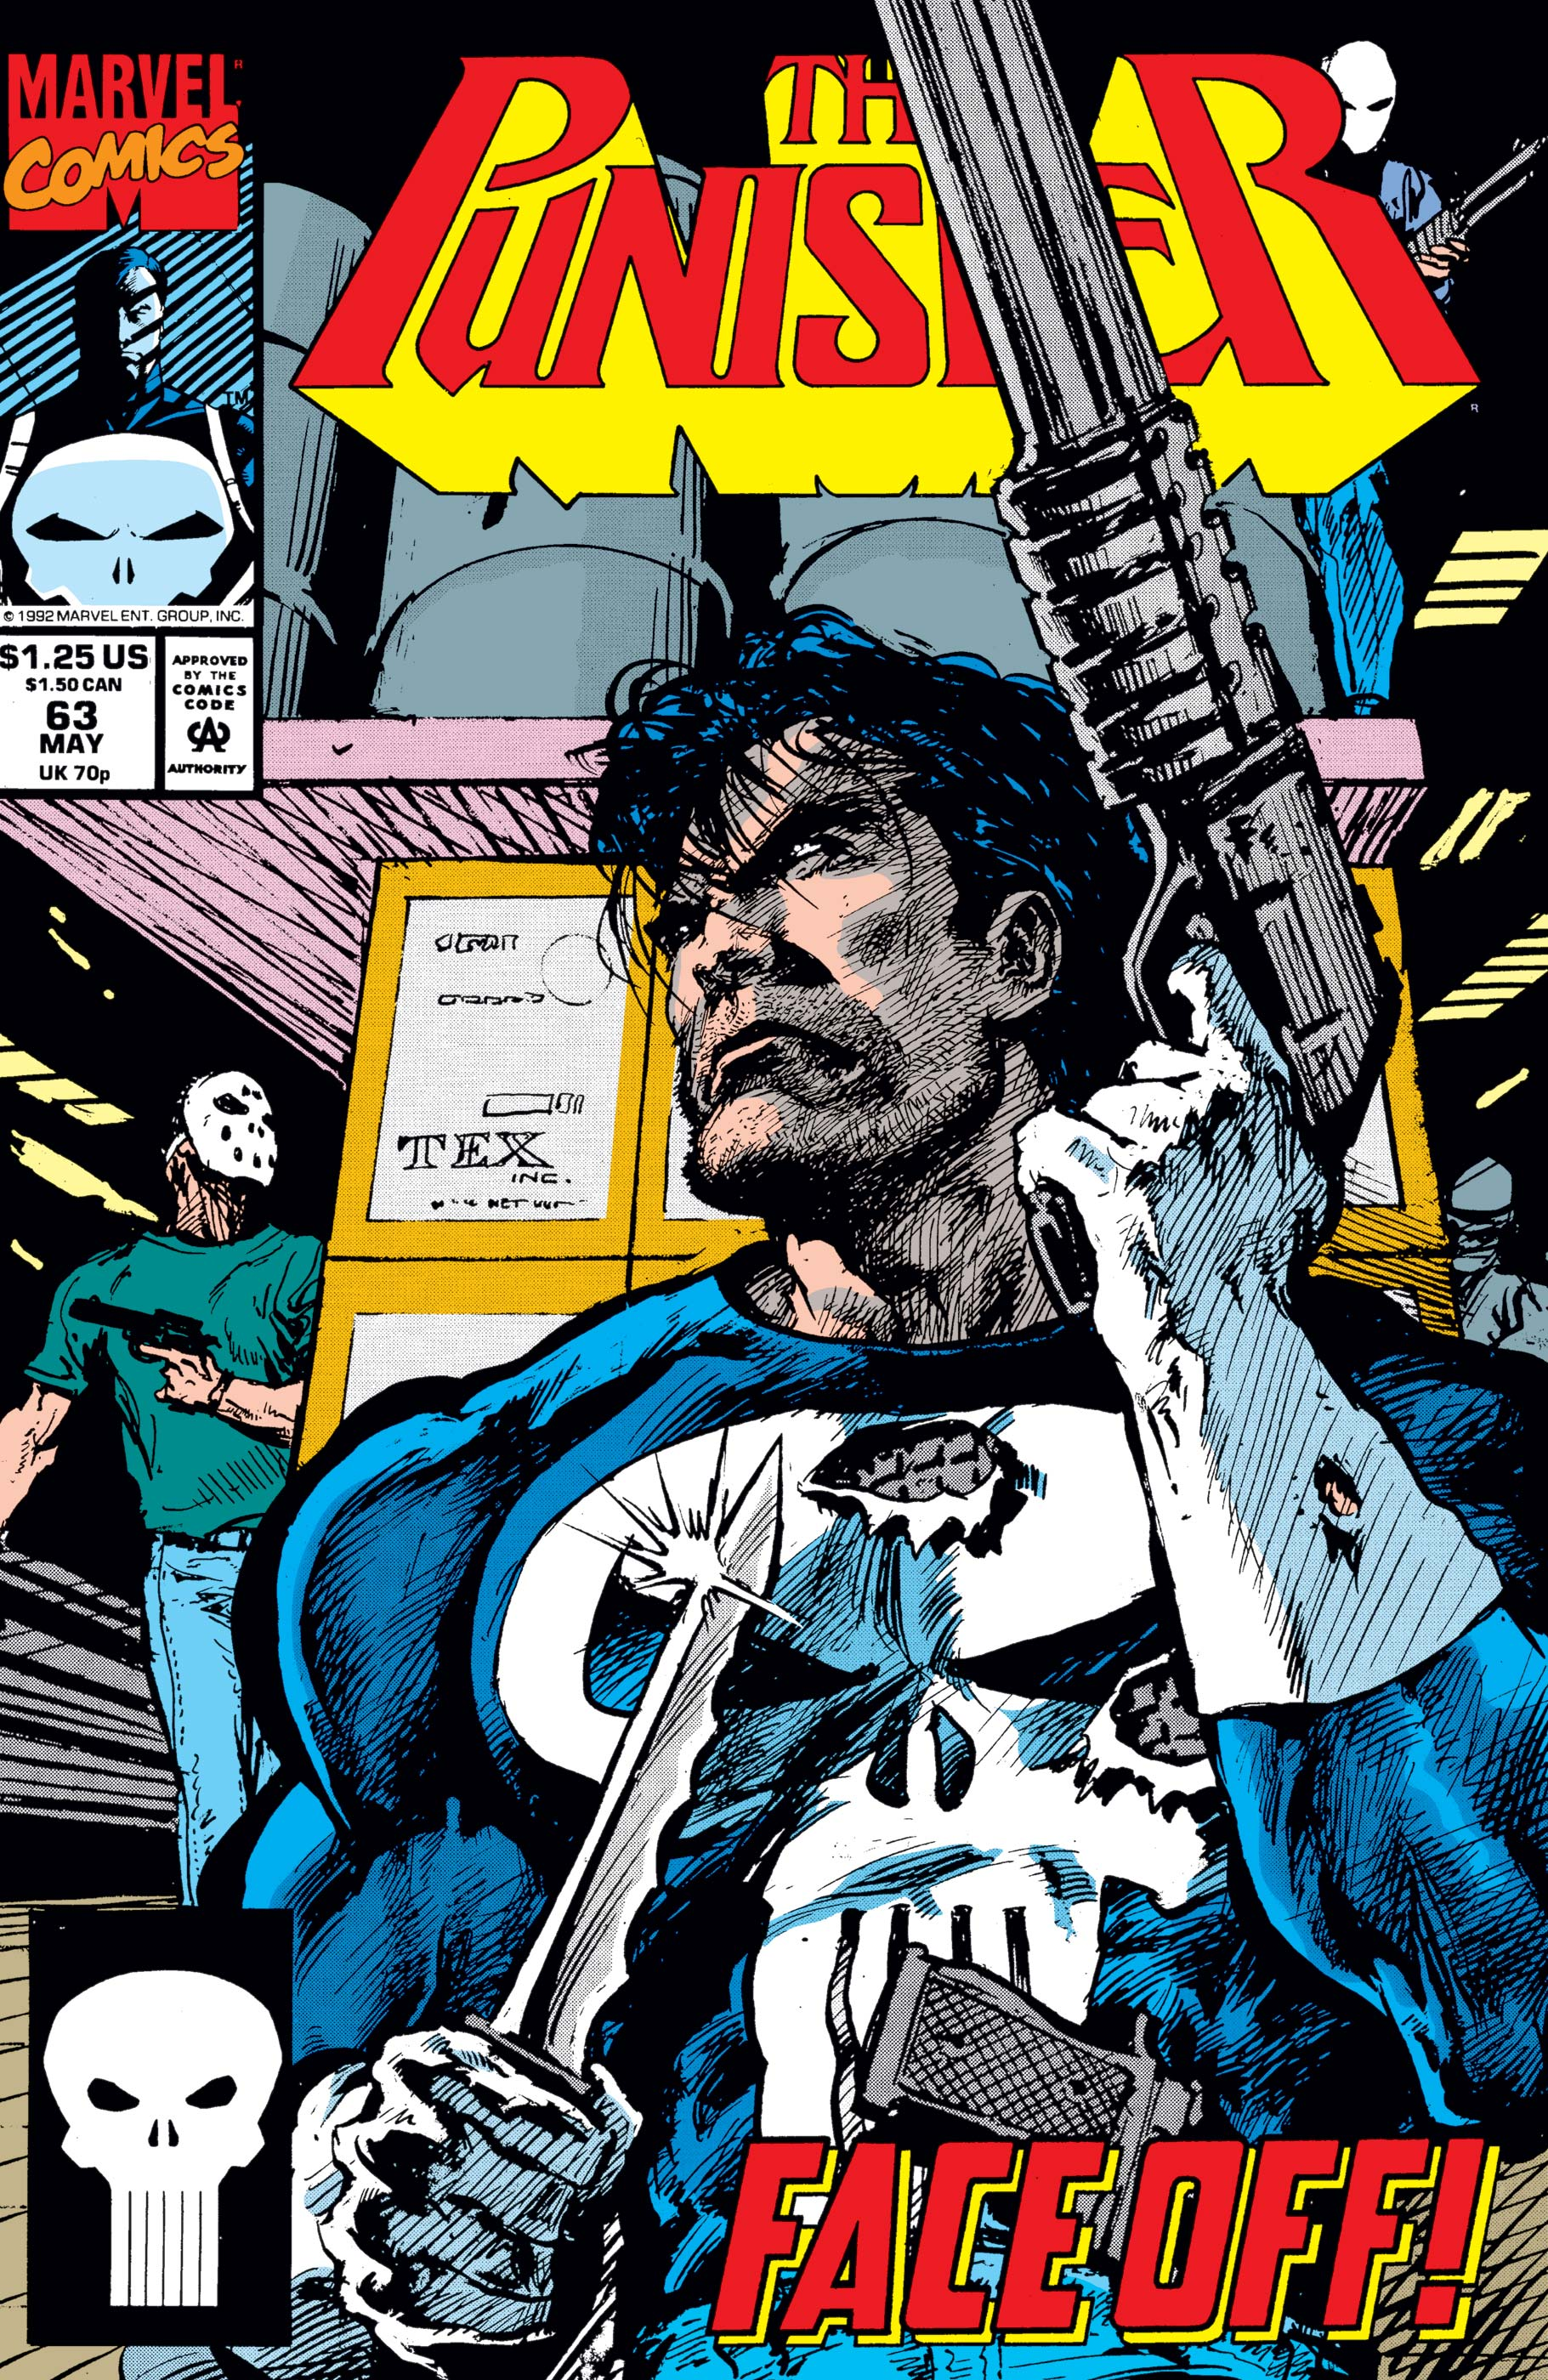 The Punisher (1987) #63